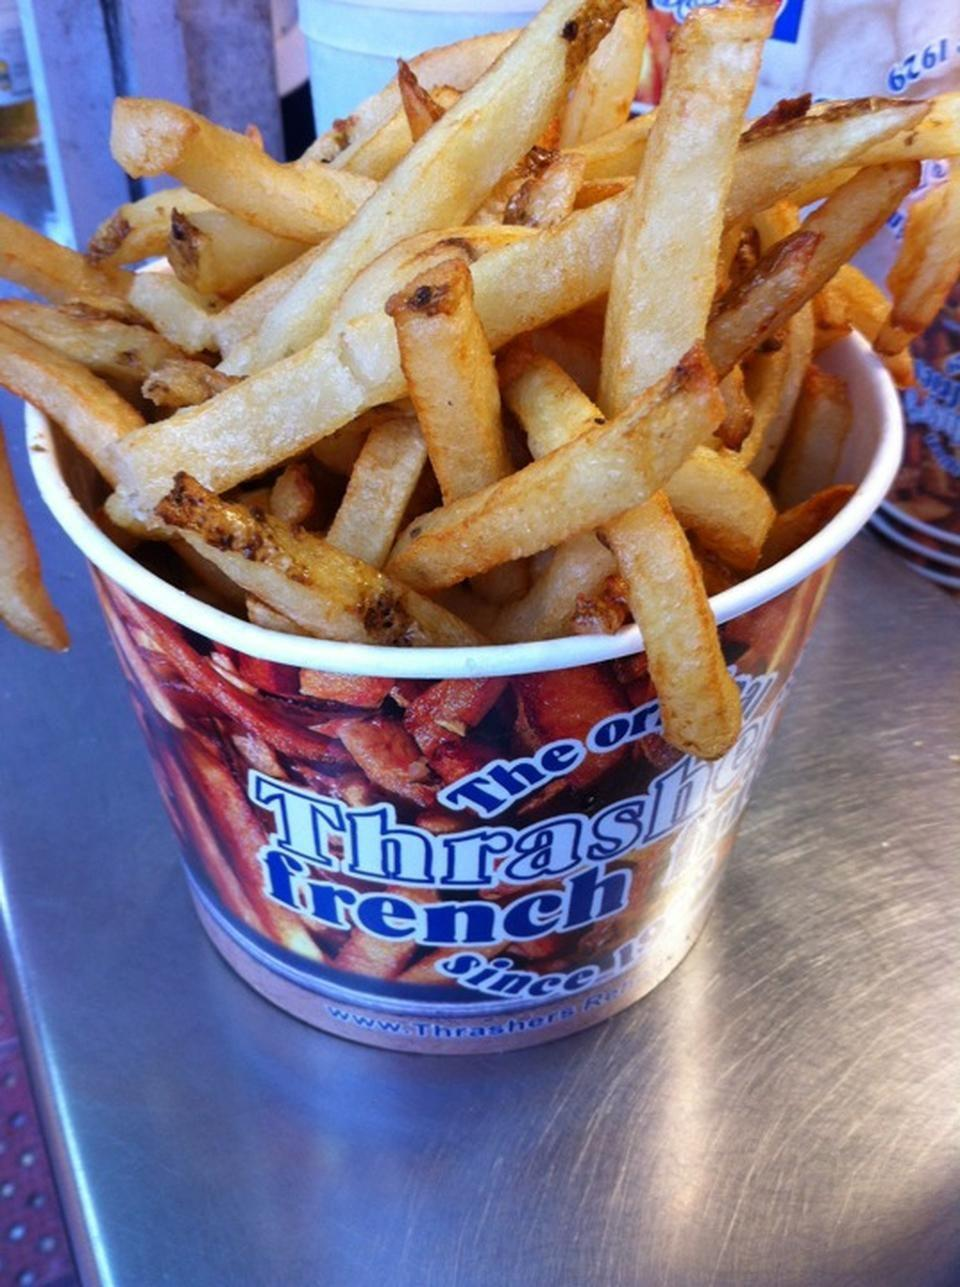 """<p><a href=""""https://www.yelp.com/biz/thrashers-french-fries-bethany-beach"""" rel=""""nofollow noopener"""" target=""""_blank"""" data-ylk=""""slk:Thrasher's French Fries"""" class=""""link rapid-noclick-resp"""">Thrasher's French Fries</a>, Rehoboth Beach</p><p>""""Woah. What did I just eat? Eat this. I don't know what they do to the fries, but it's good."""" - Foursquare user <a href=""""https://foursquare.com/foamingbbq"""" rel=""""nofollow noopener"""" target=""""_blank"""" data-ylk=""""slk:Angie Harmon"""" class=""""link rapid-noclick-resp"""">Angie Harmon</a></p>"""